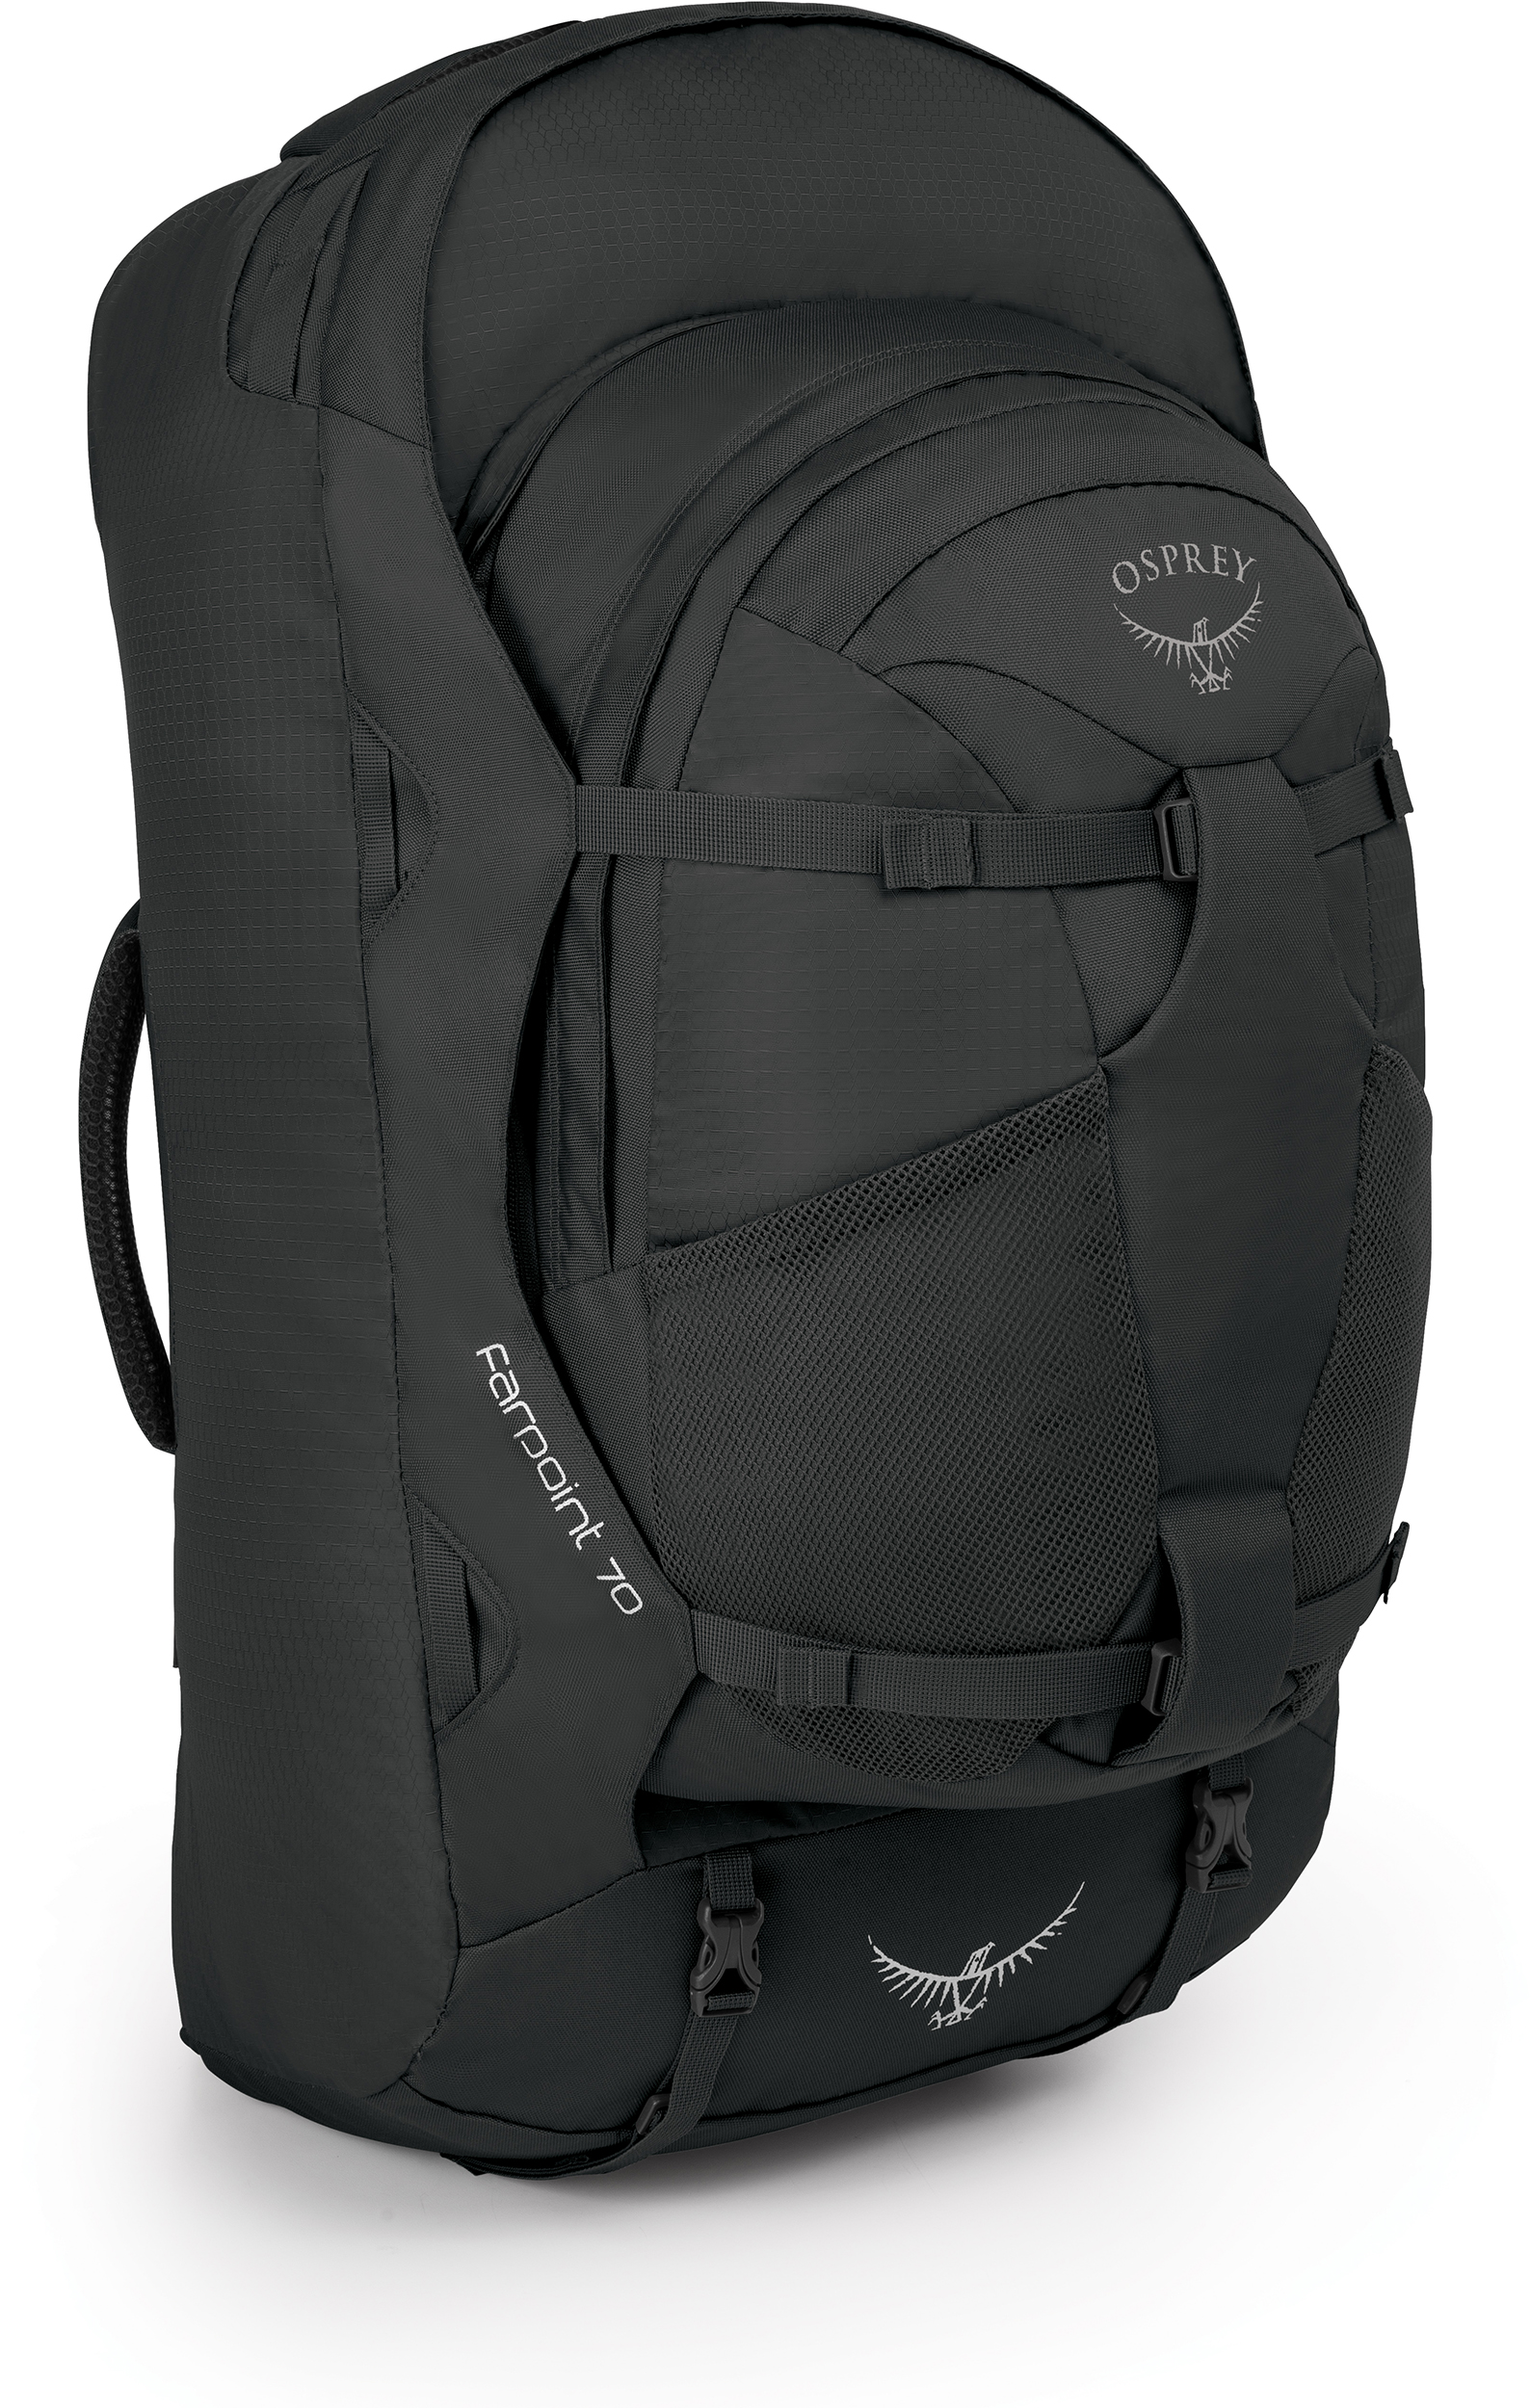 18dac34d38 Osprey Packs and bags